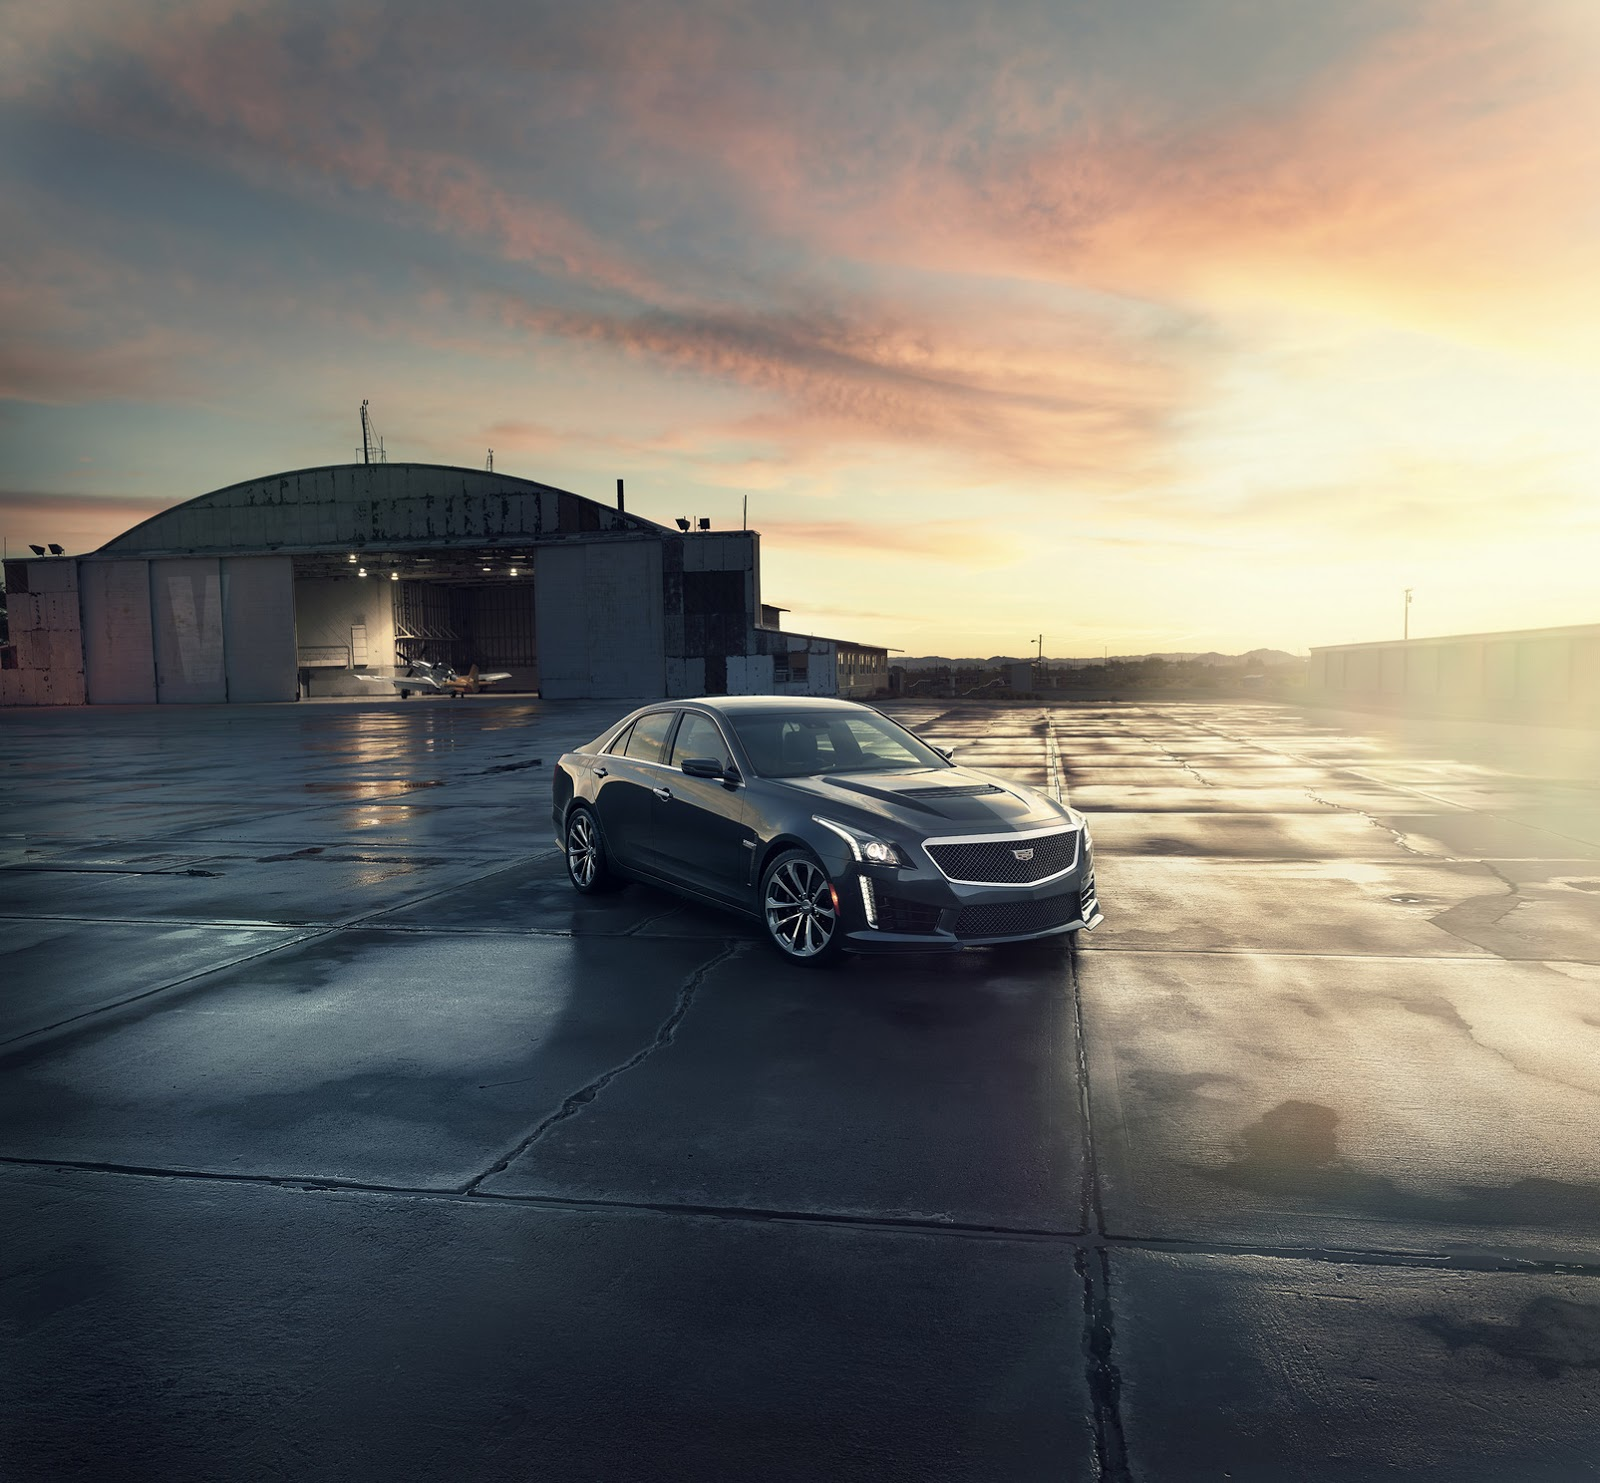 New 2016 Cadillac: New 2016 Cadillac CTS-V Has 640HP Supercharged V8, Reaches 200MPH